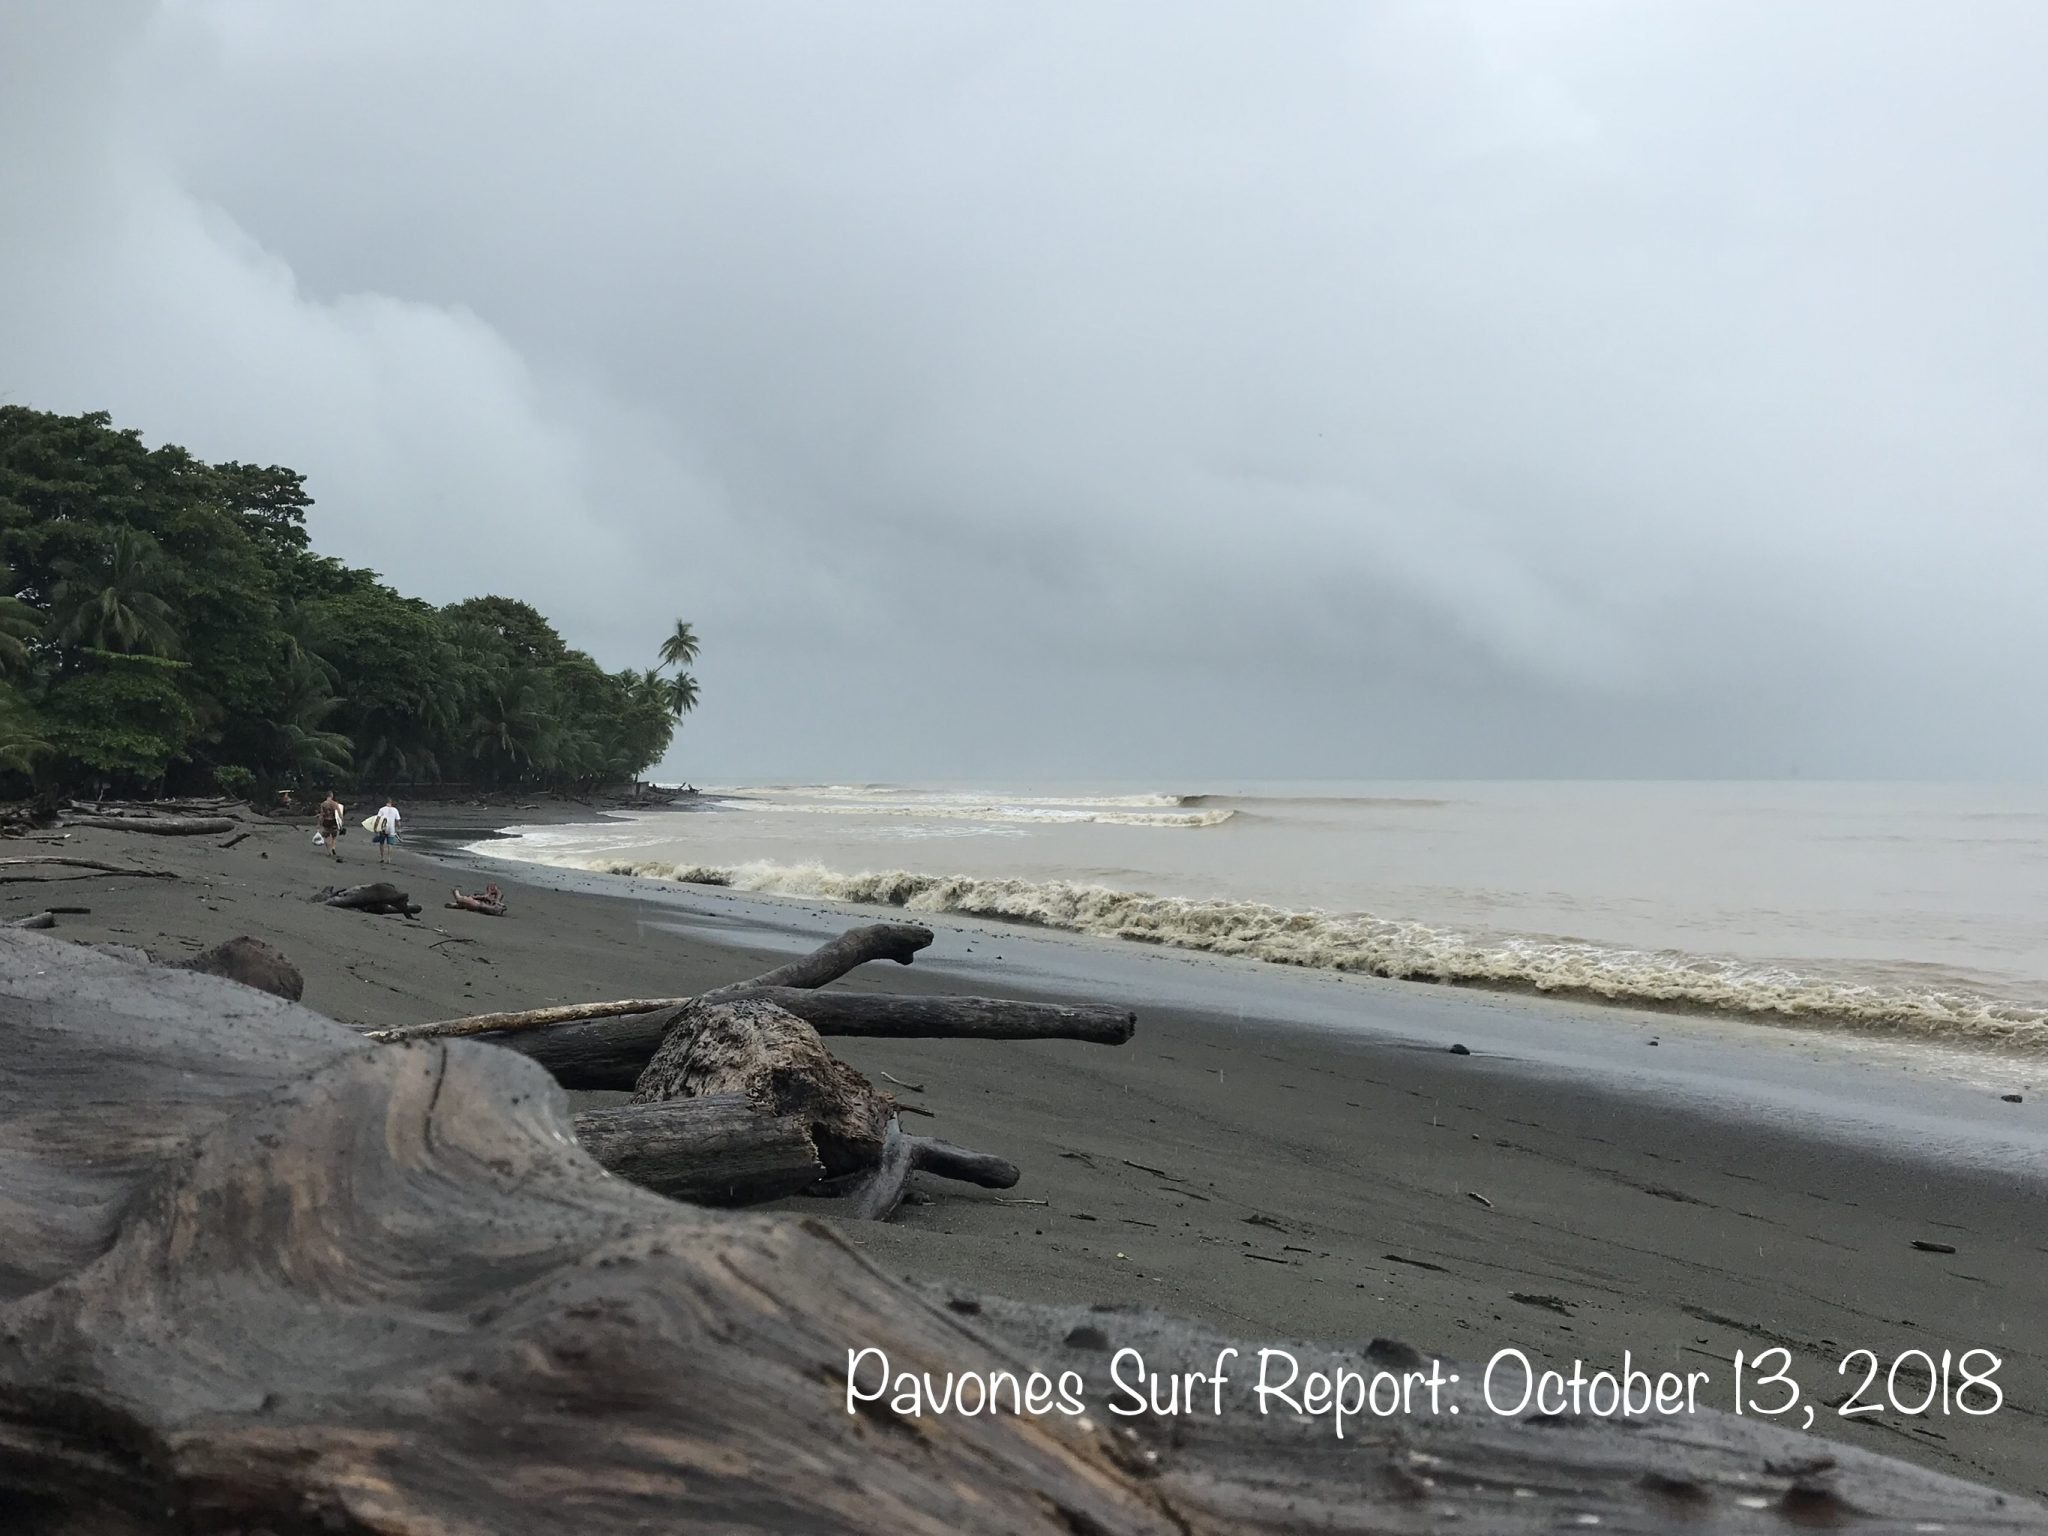 Pavon Surf Report